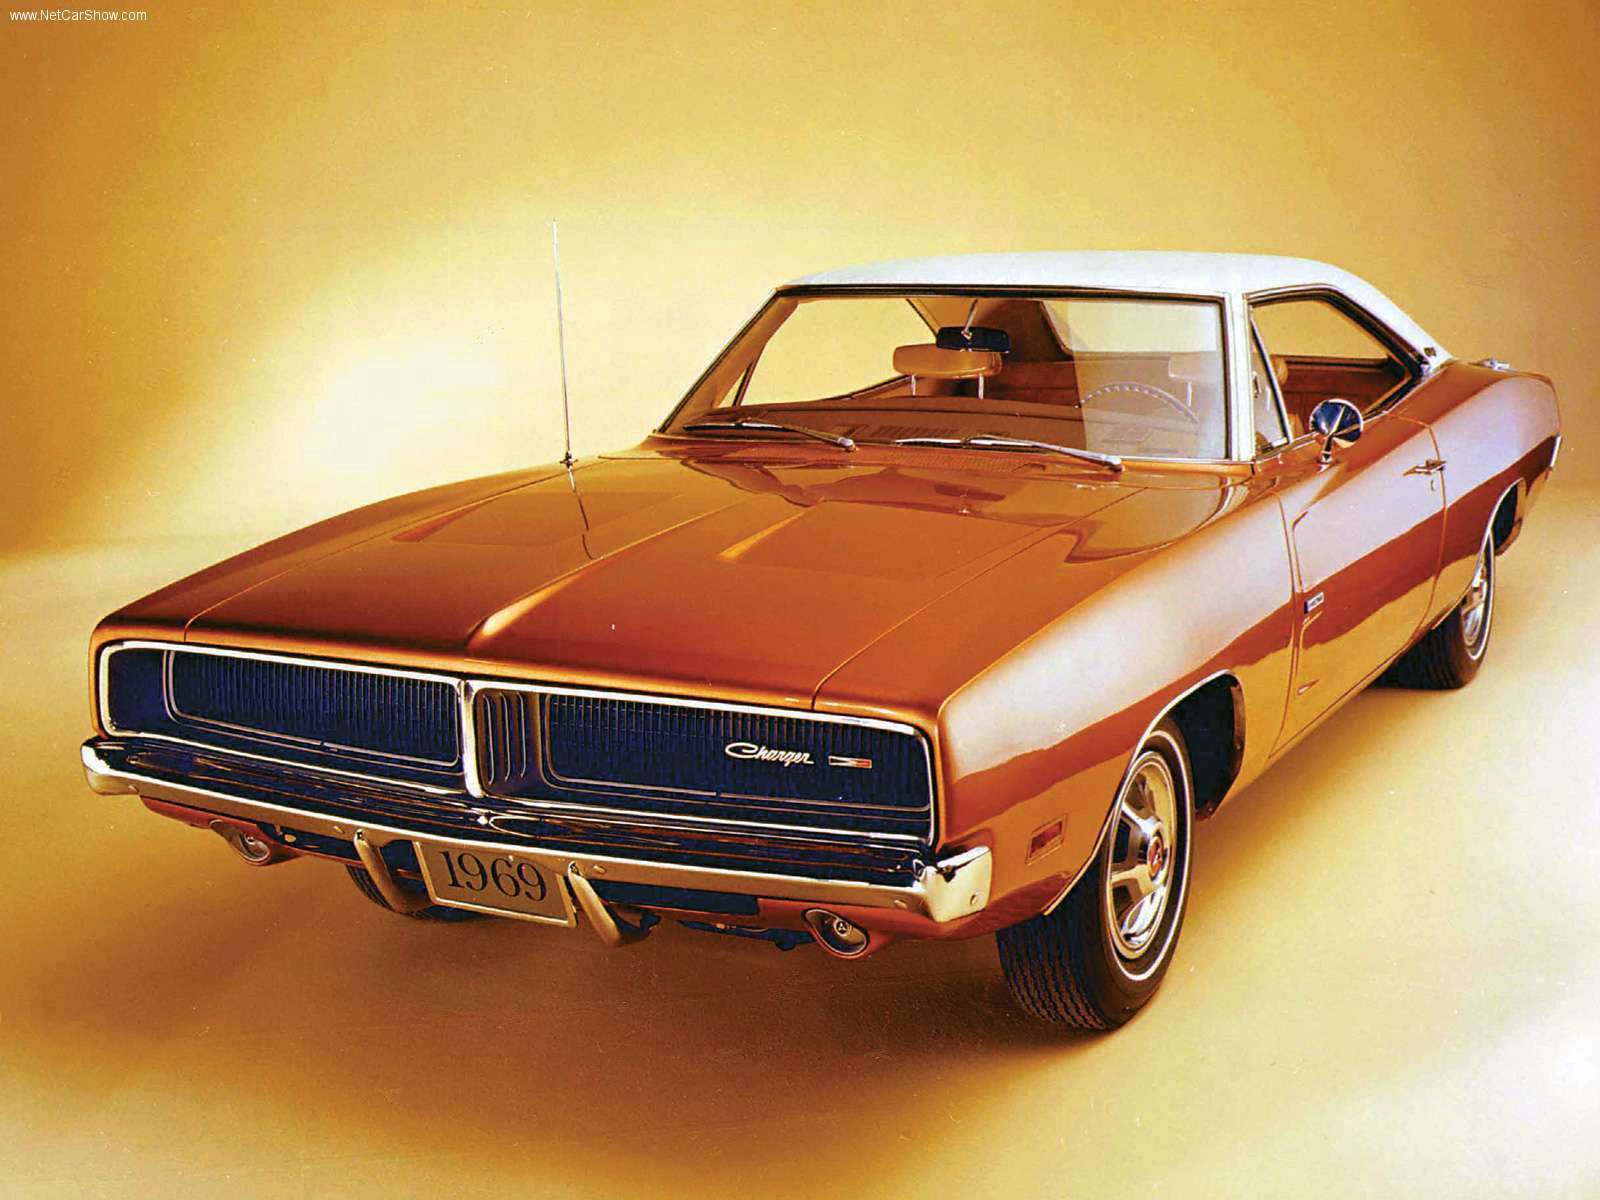 transpress nz 1969 dodge charger. Black Bedroom Furniture Sets. Home Design Ideas